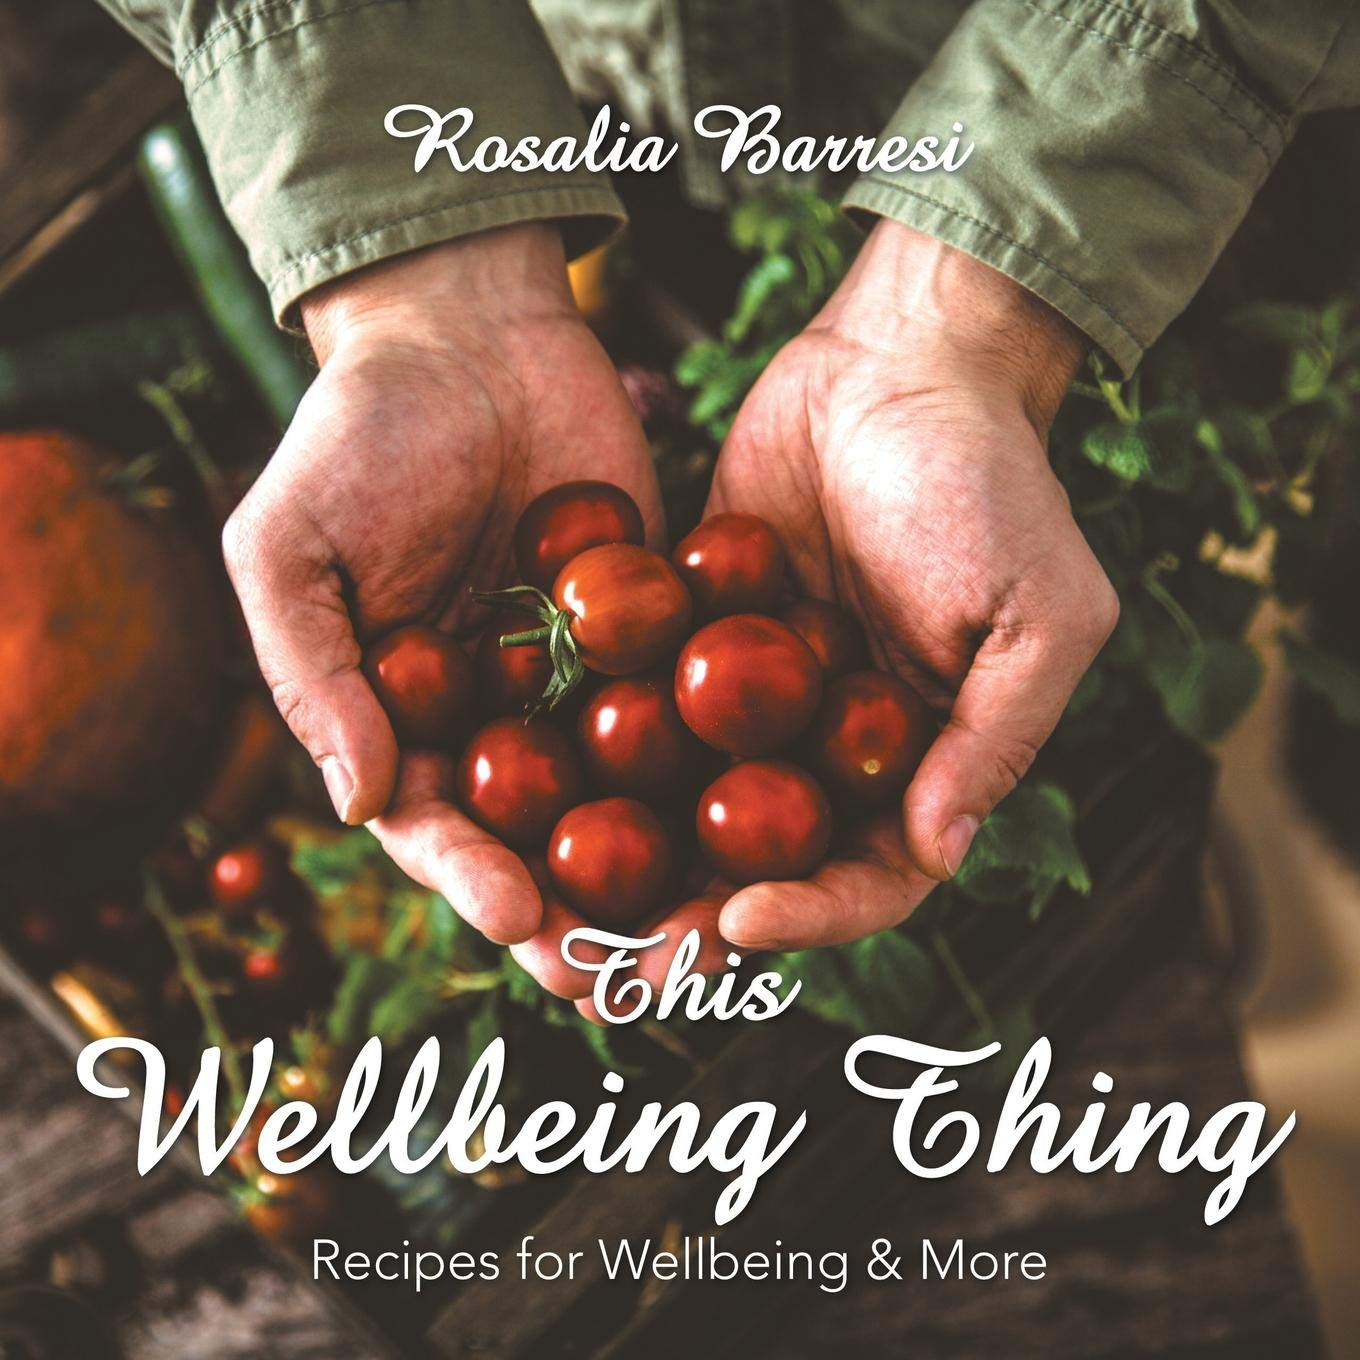 This Wellbeing Thing by Rosalia Barresi